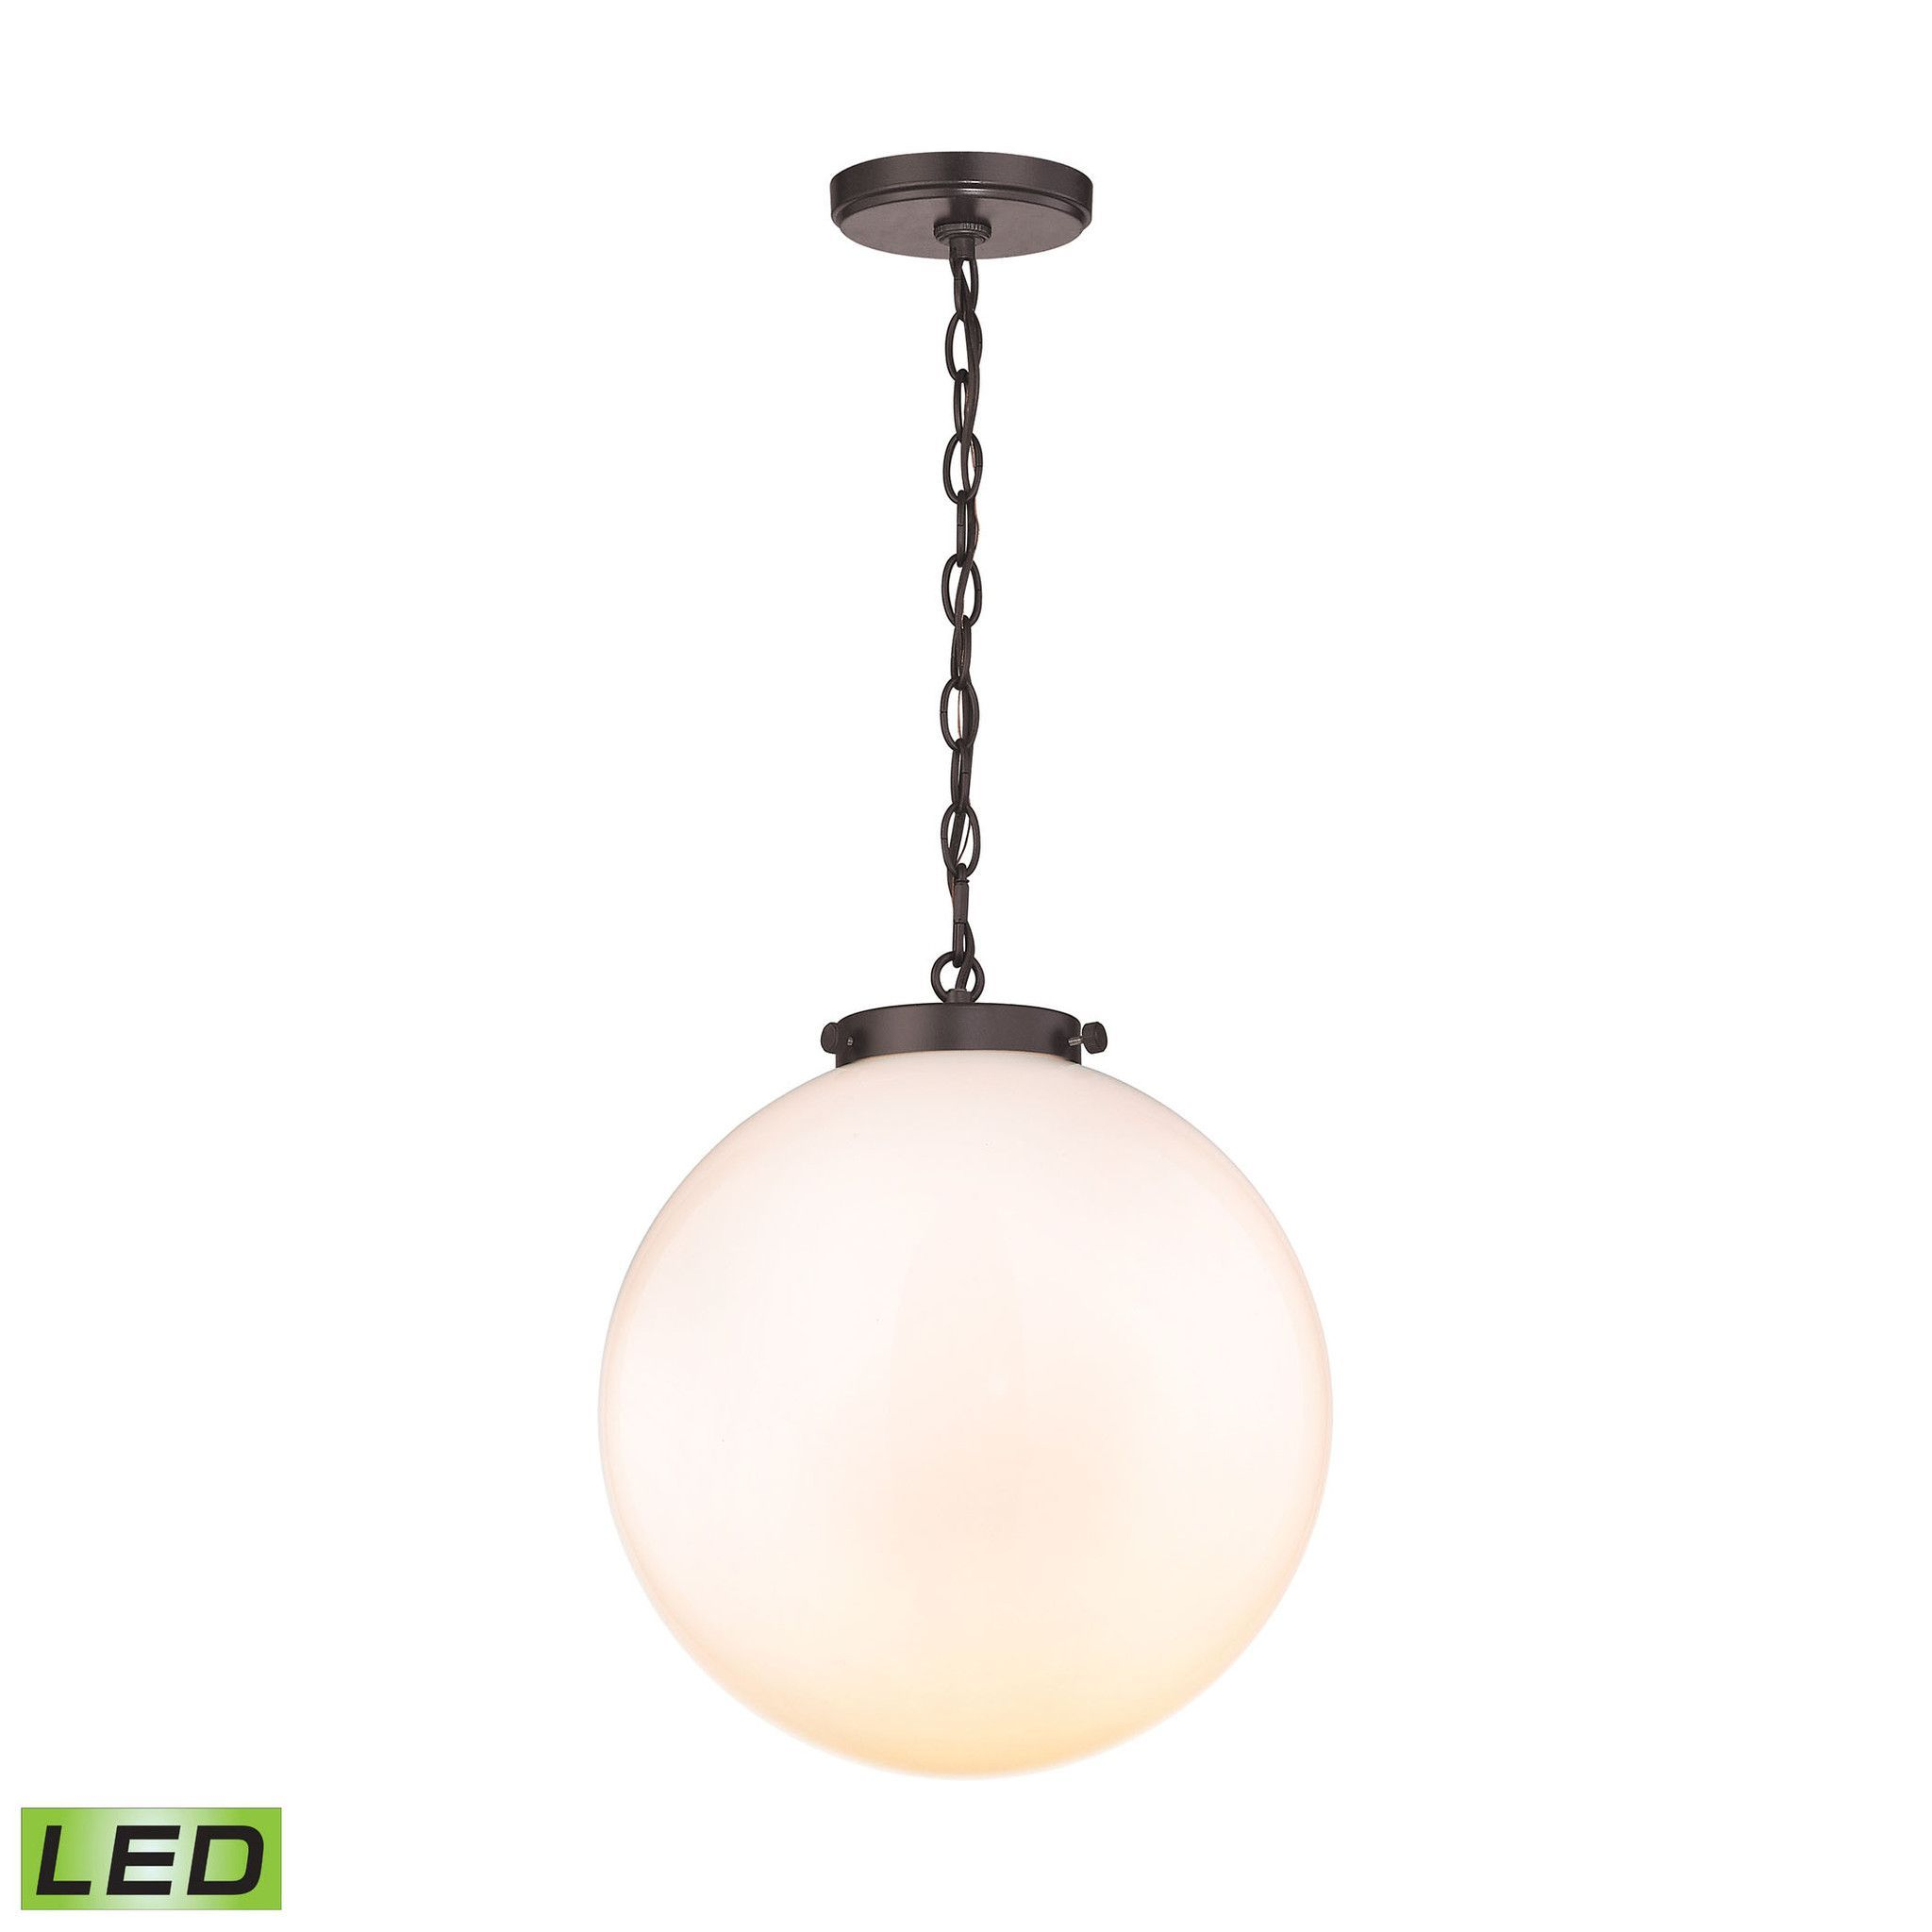 Gramercy light led pendant in oil rubbed bronze products